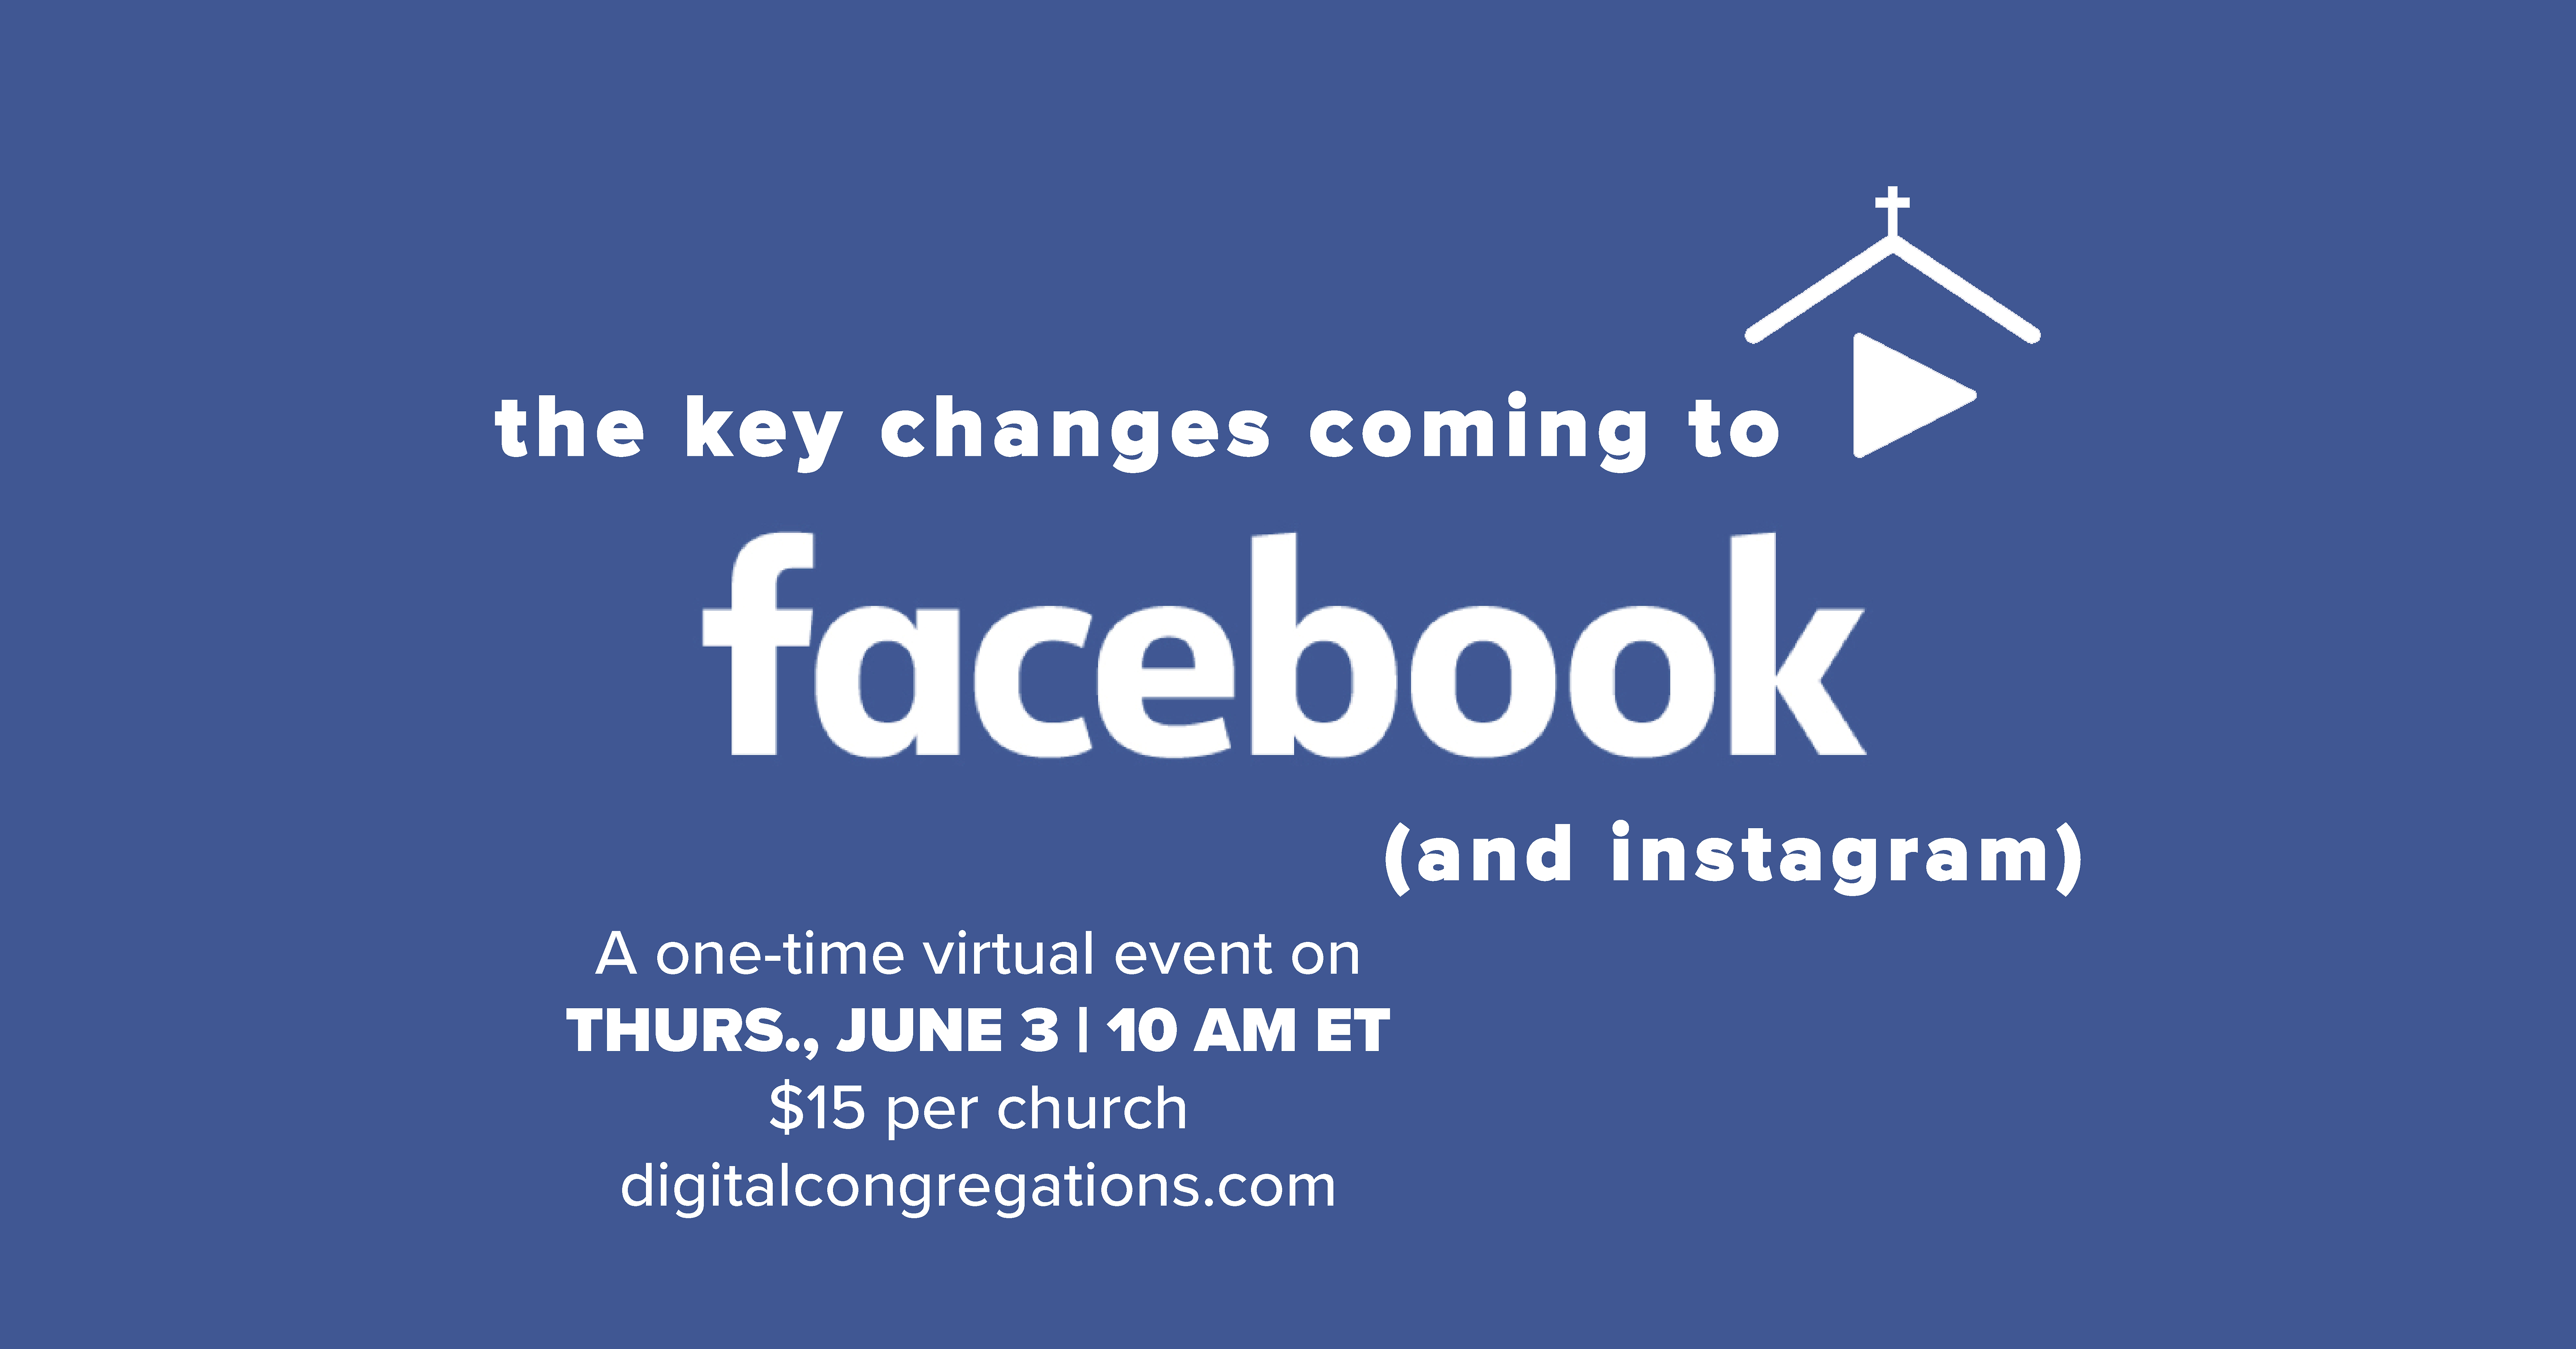 The Key Changes Coming to Facebook